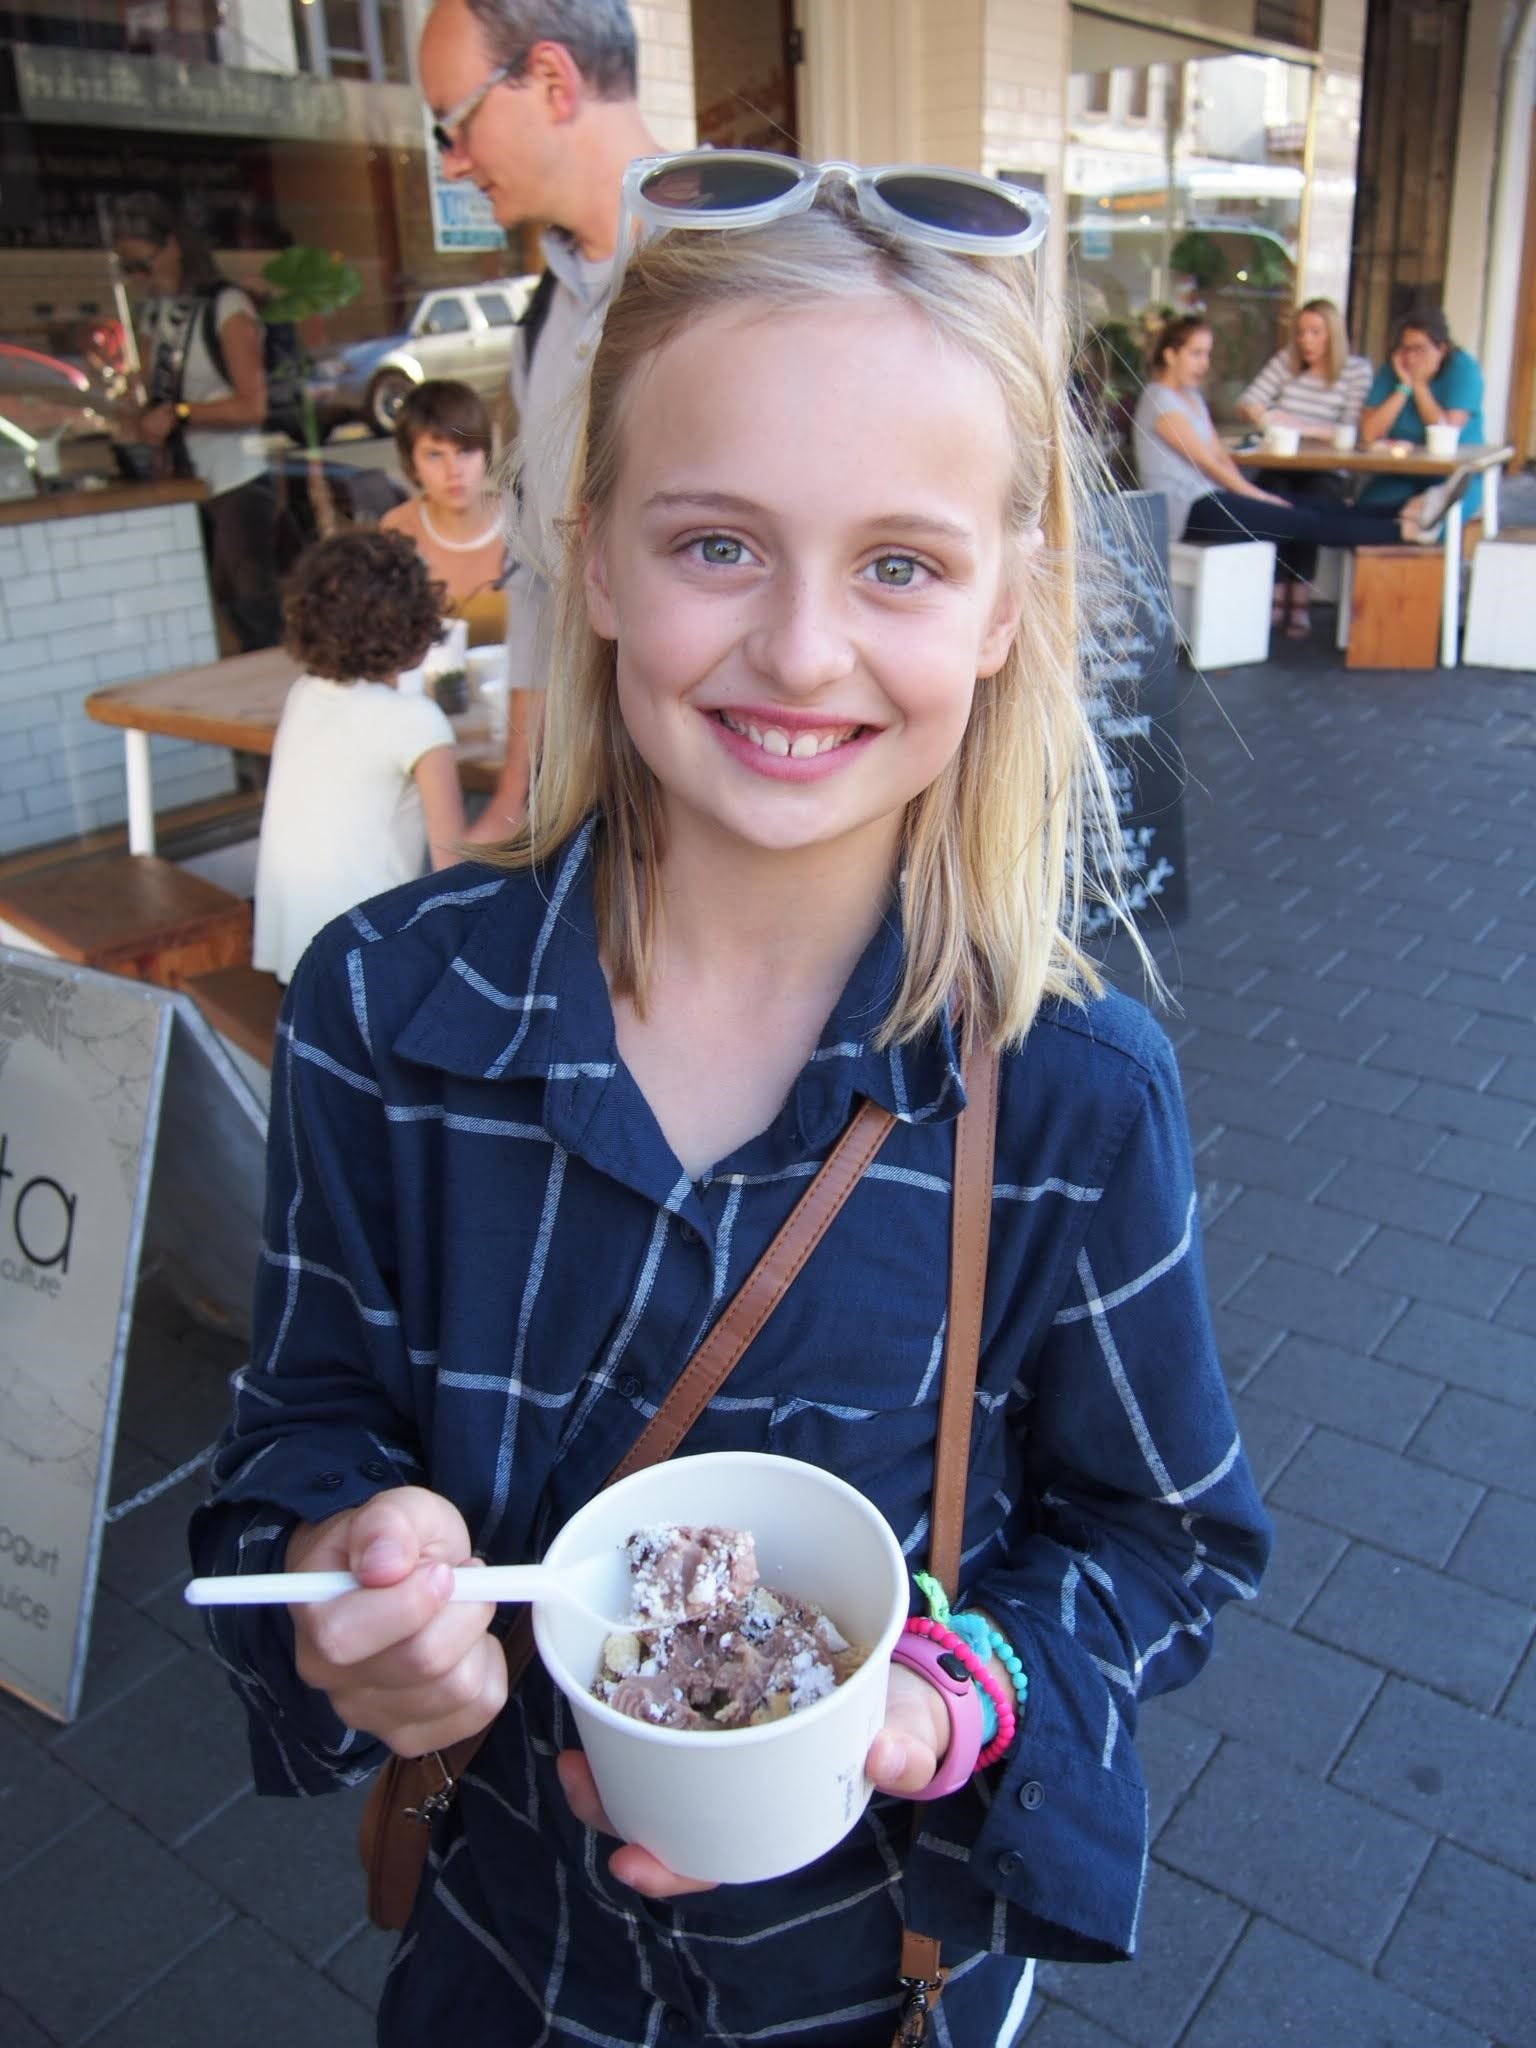 Dining Out With Kids: A Survival Guide [Guest Post]